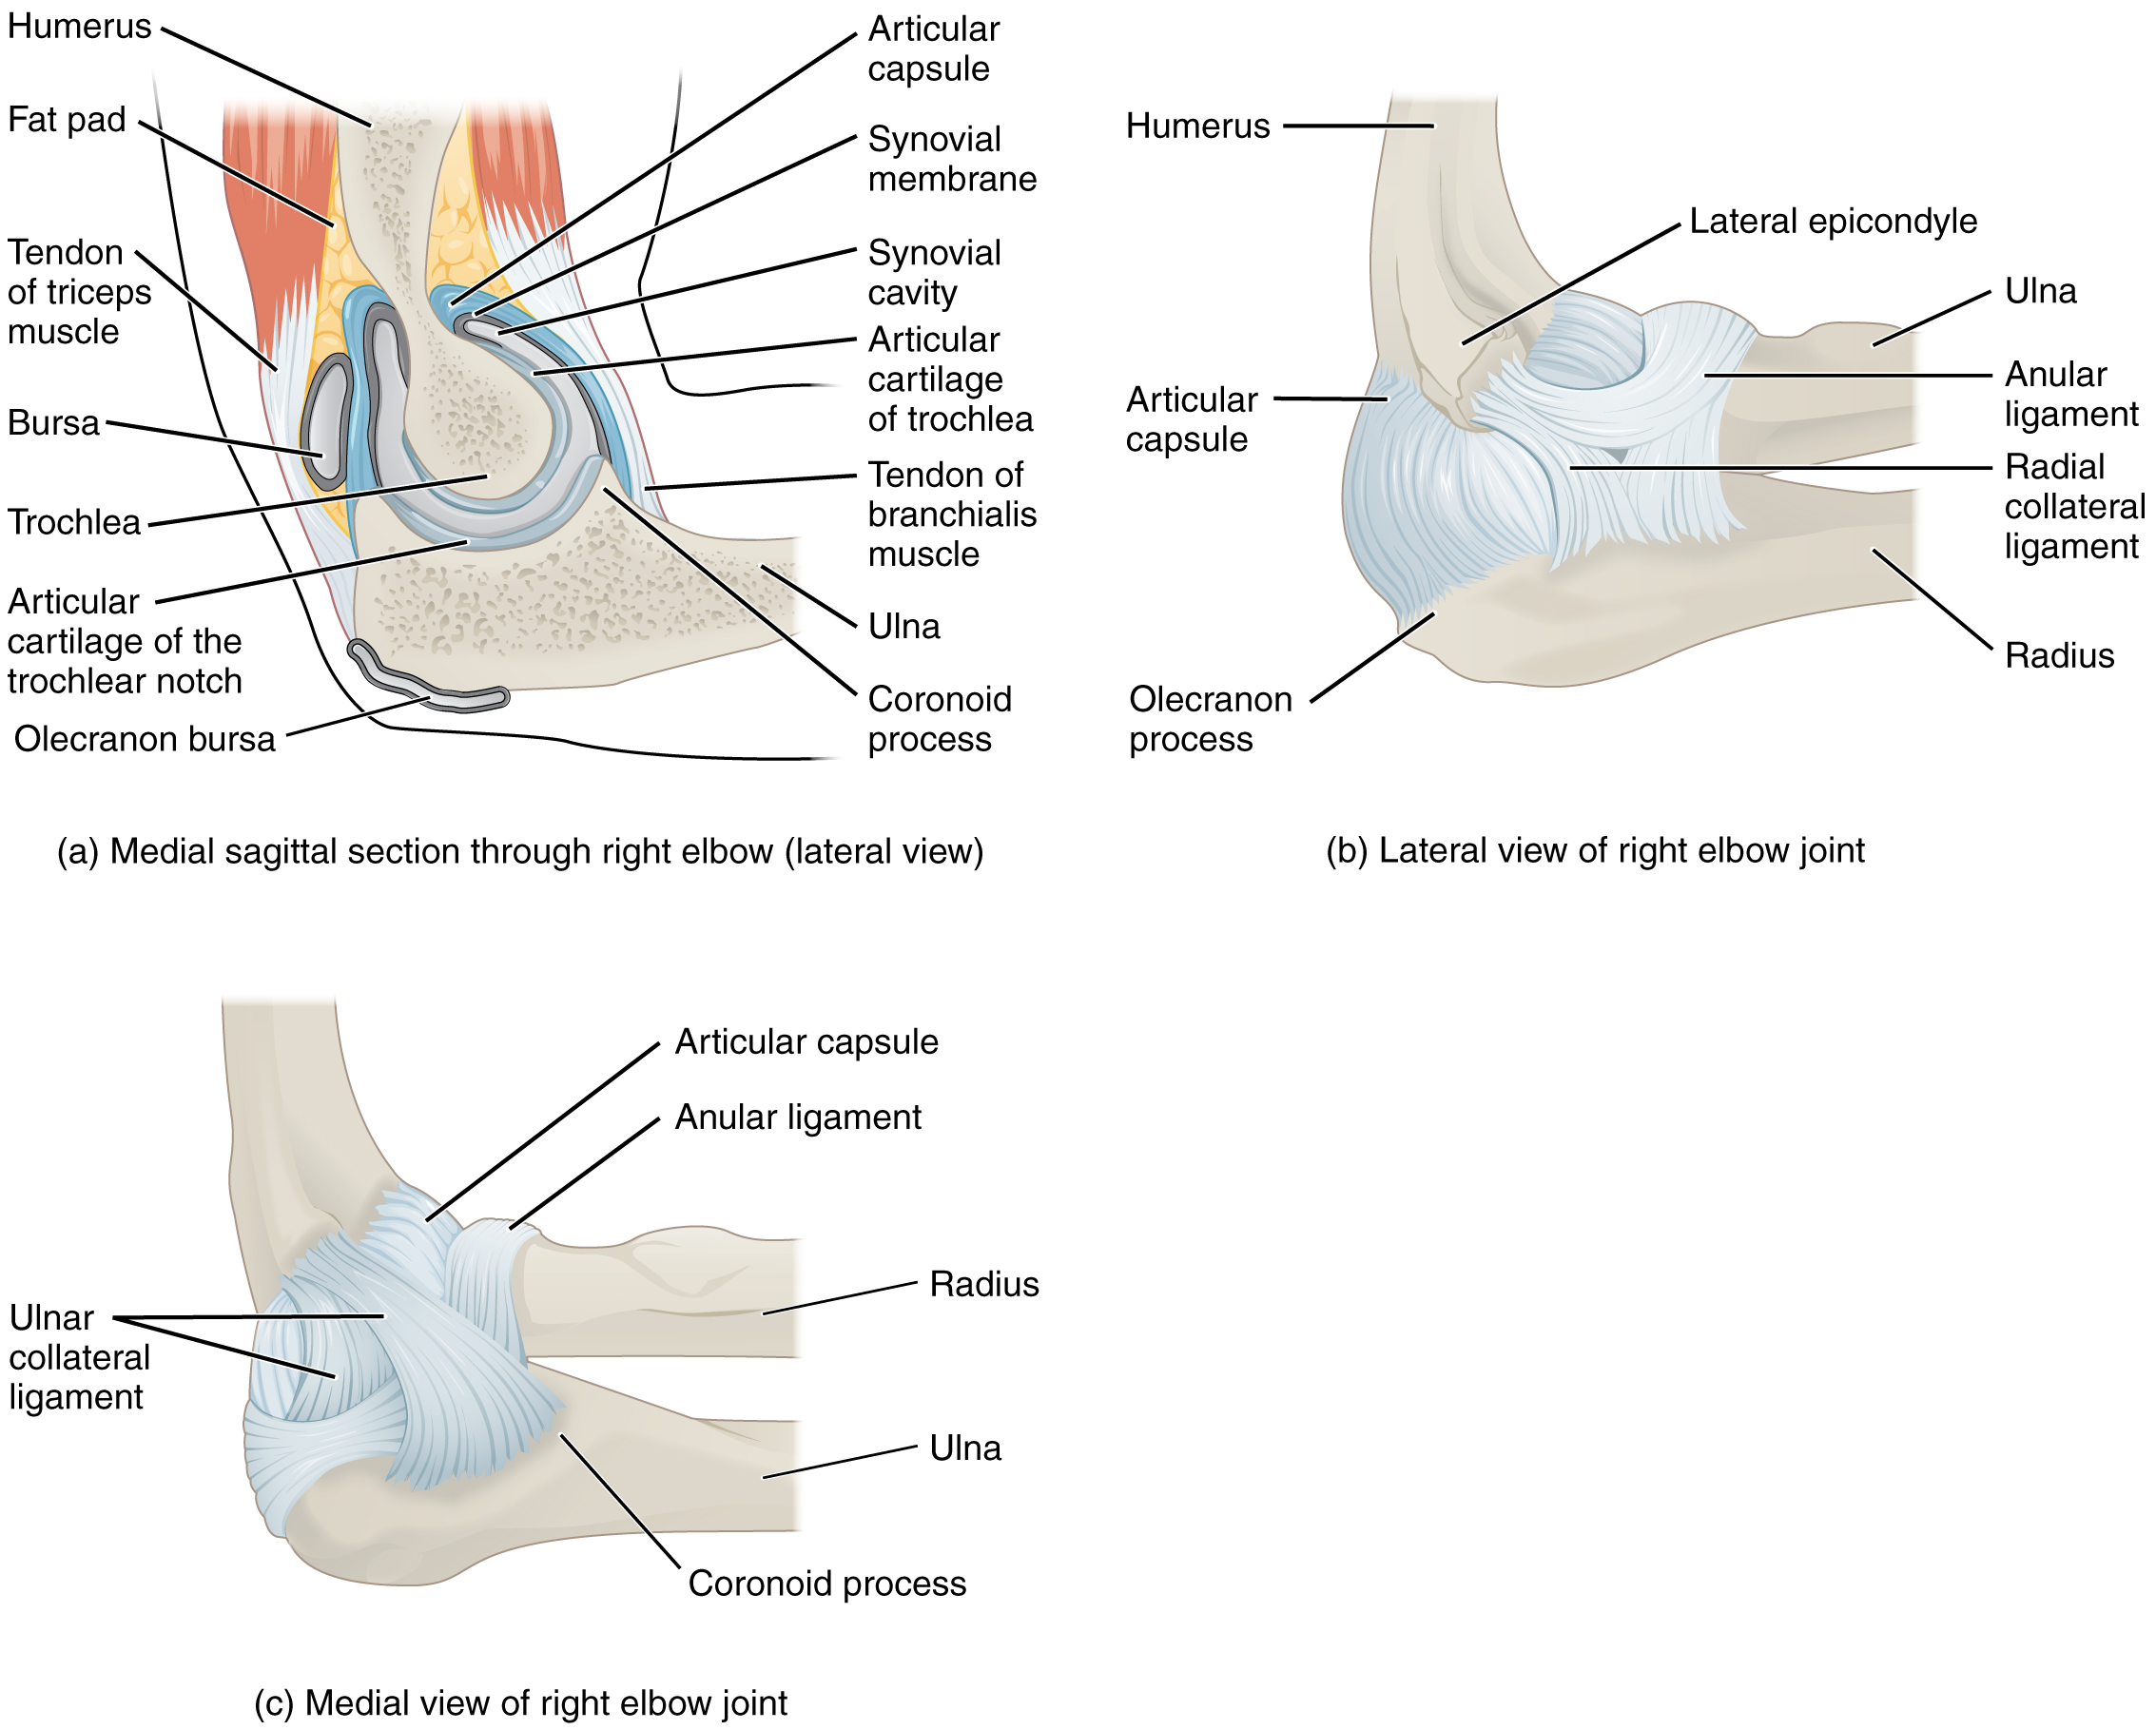 This figure shows the structure of the elbow joint. The top, left panel shows the medial sagittal section of the right elbow joint. The top, right panel shows the lateral view of the right elbow joint, and the bottom, left panel shows the medial view of the right elbow joint.